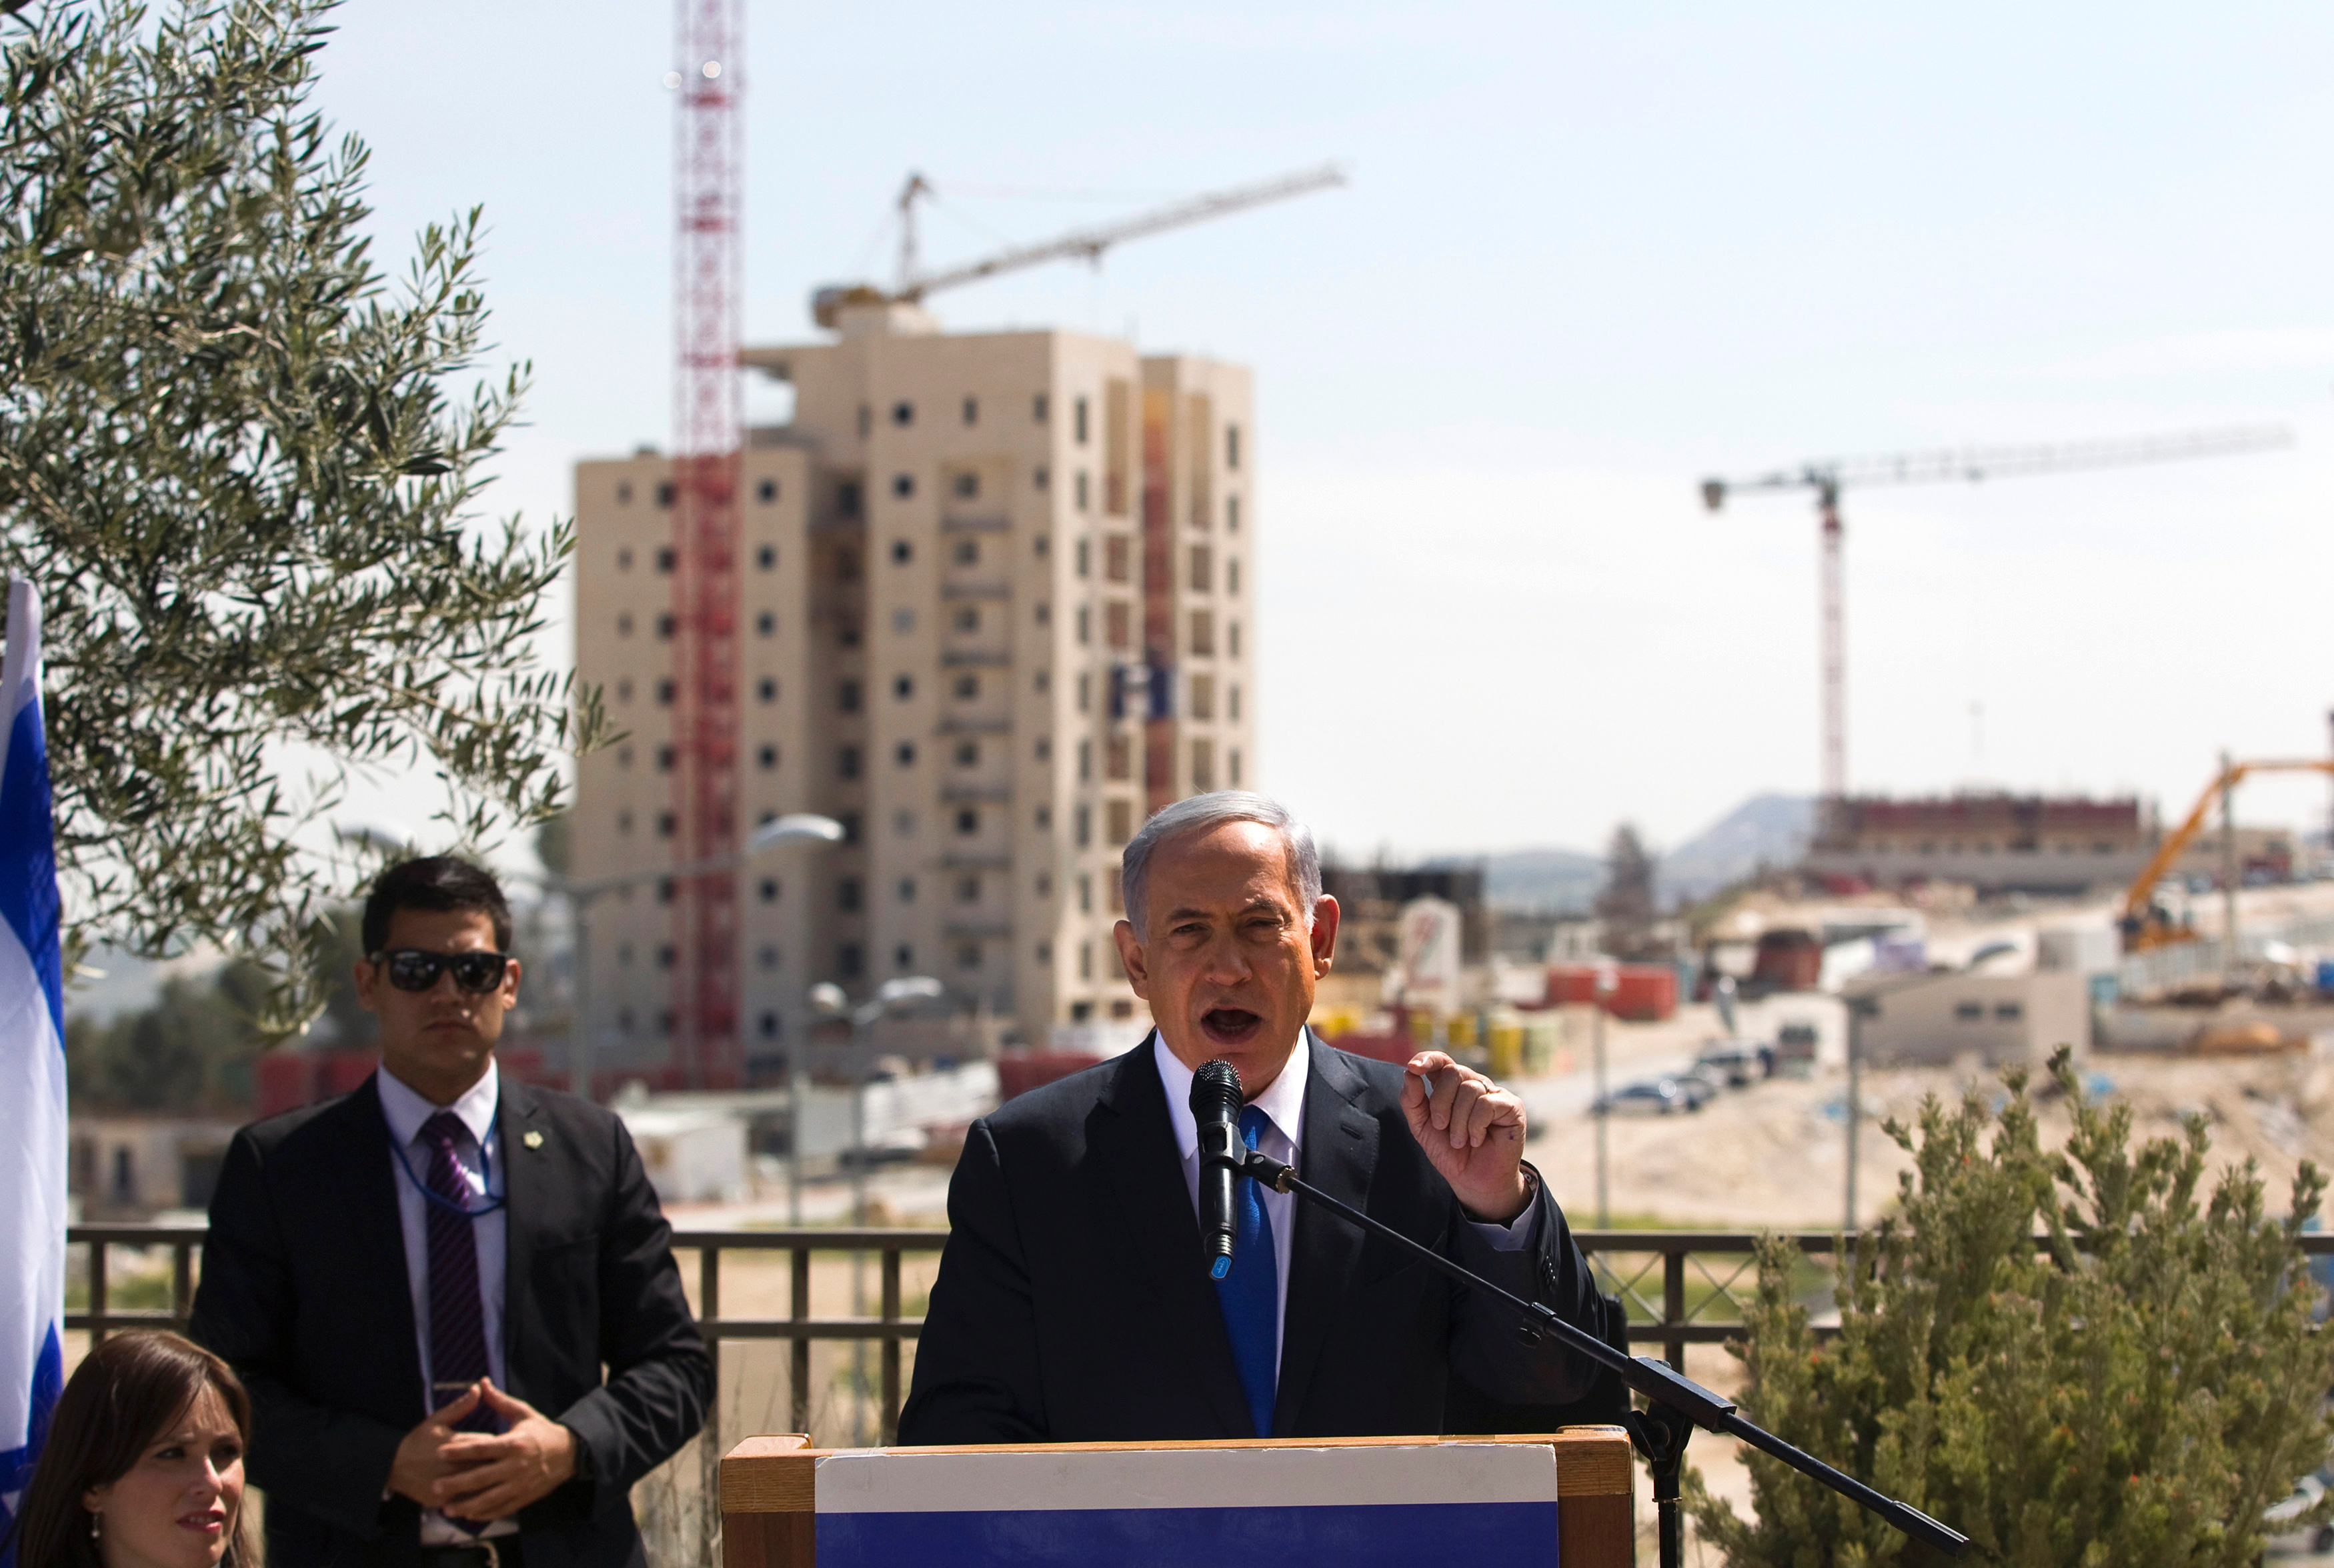 FILE PHOTO: Israeli Prime Minister Benjamin Netanyahu delivers a statement in front of new construction in the Jewish settlement known to Israelis as Har Homa and to Palestinians as Jabal Abu Ghneim in an area of the West Bank that Israel captured in a 1967 war and annexed to the city of Jerusalem, March 16, 2015. REUTERS/Ronen Zvulun/File Photo